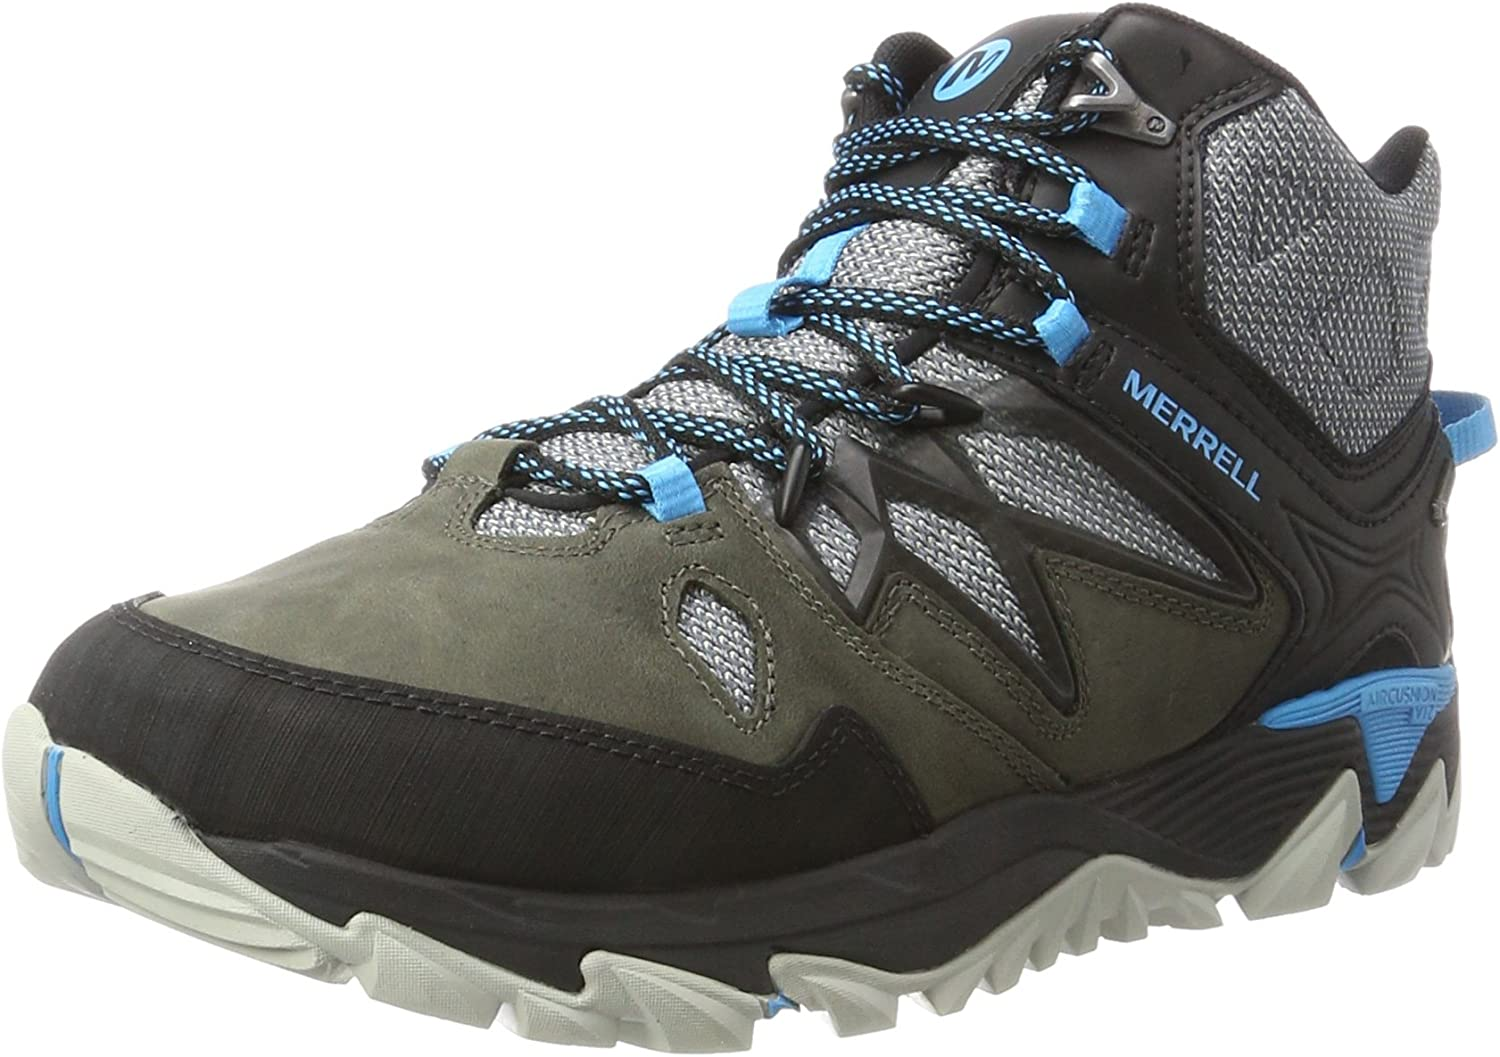 Merrell Men's All Out All Out Blaze 2 Mid GTX High Rise Hiking Boots